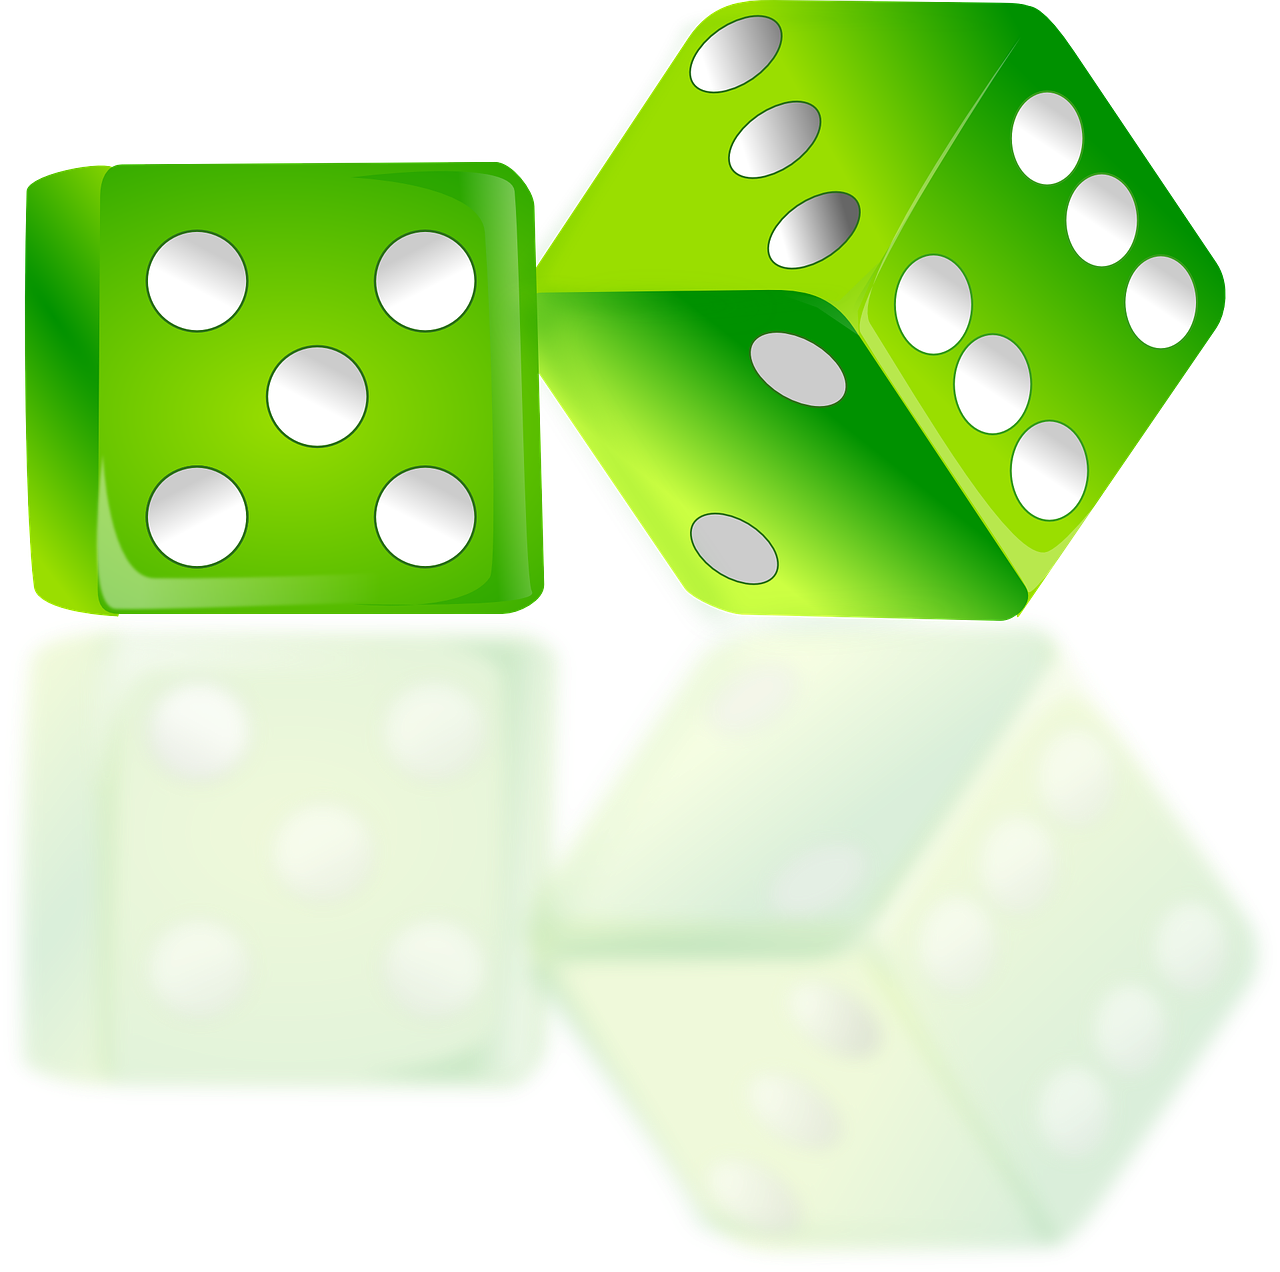 dice rolling game free photo